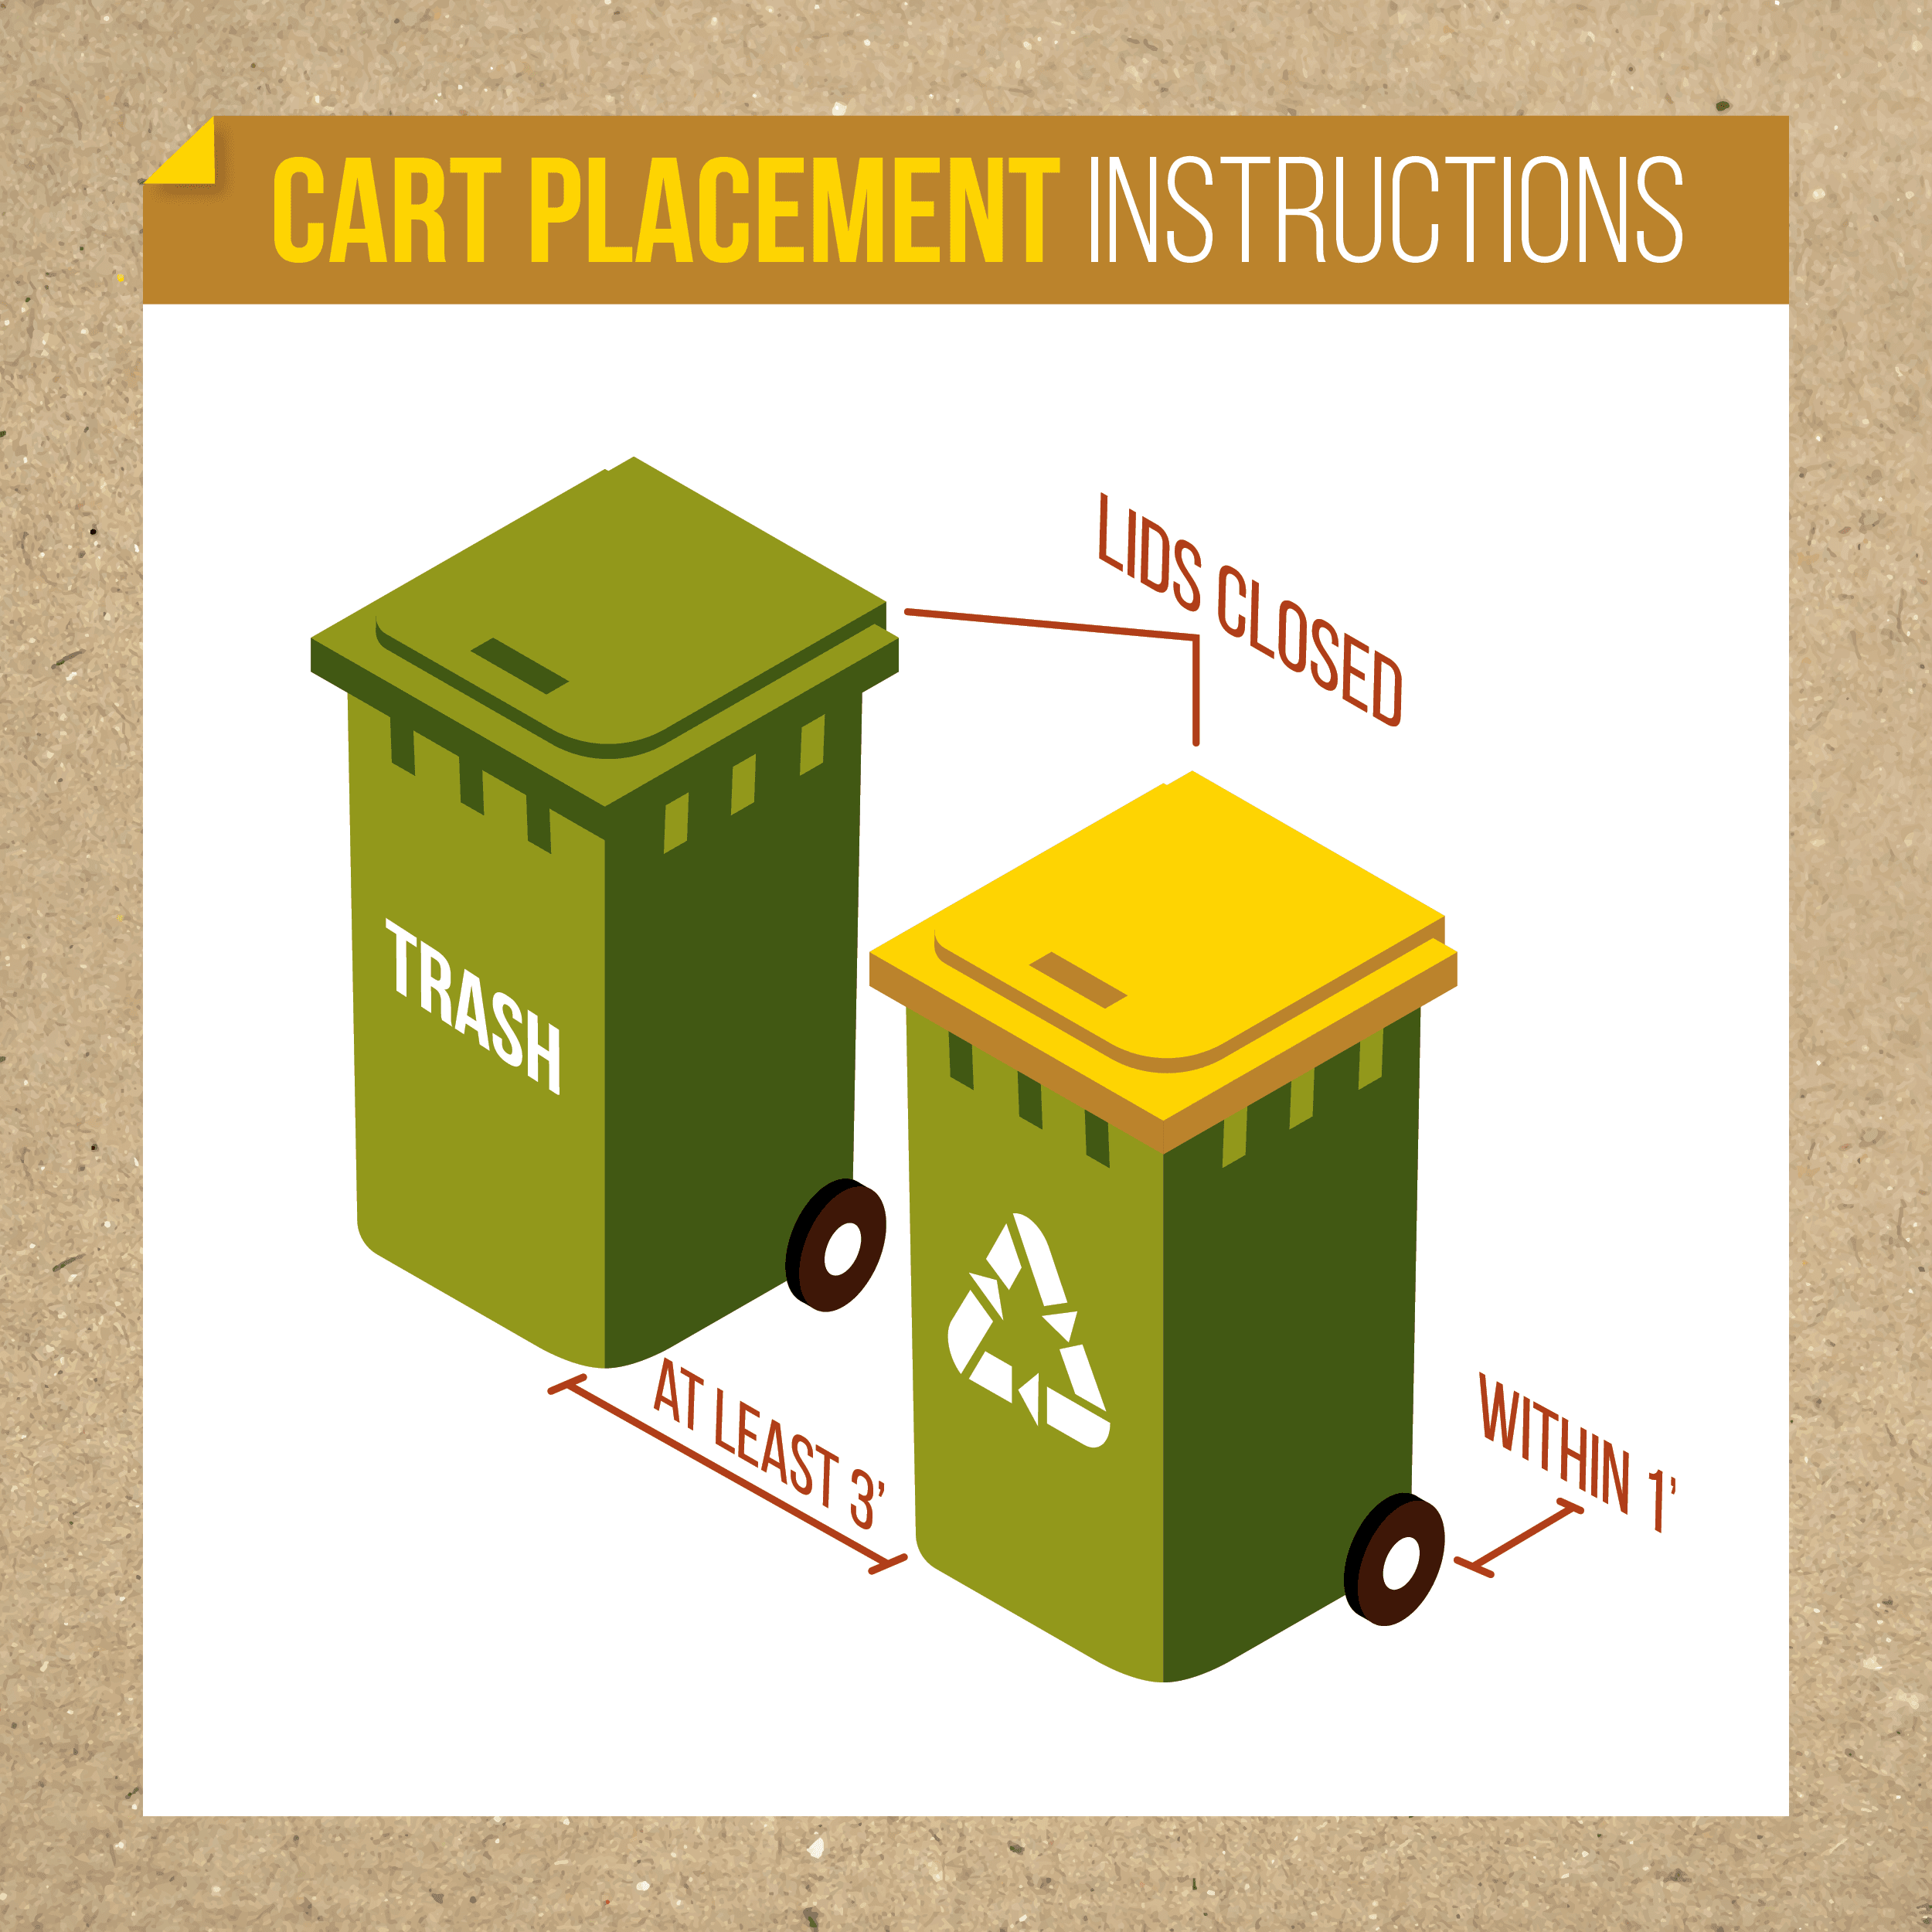 Cart Placement Instructions